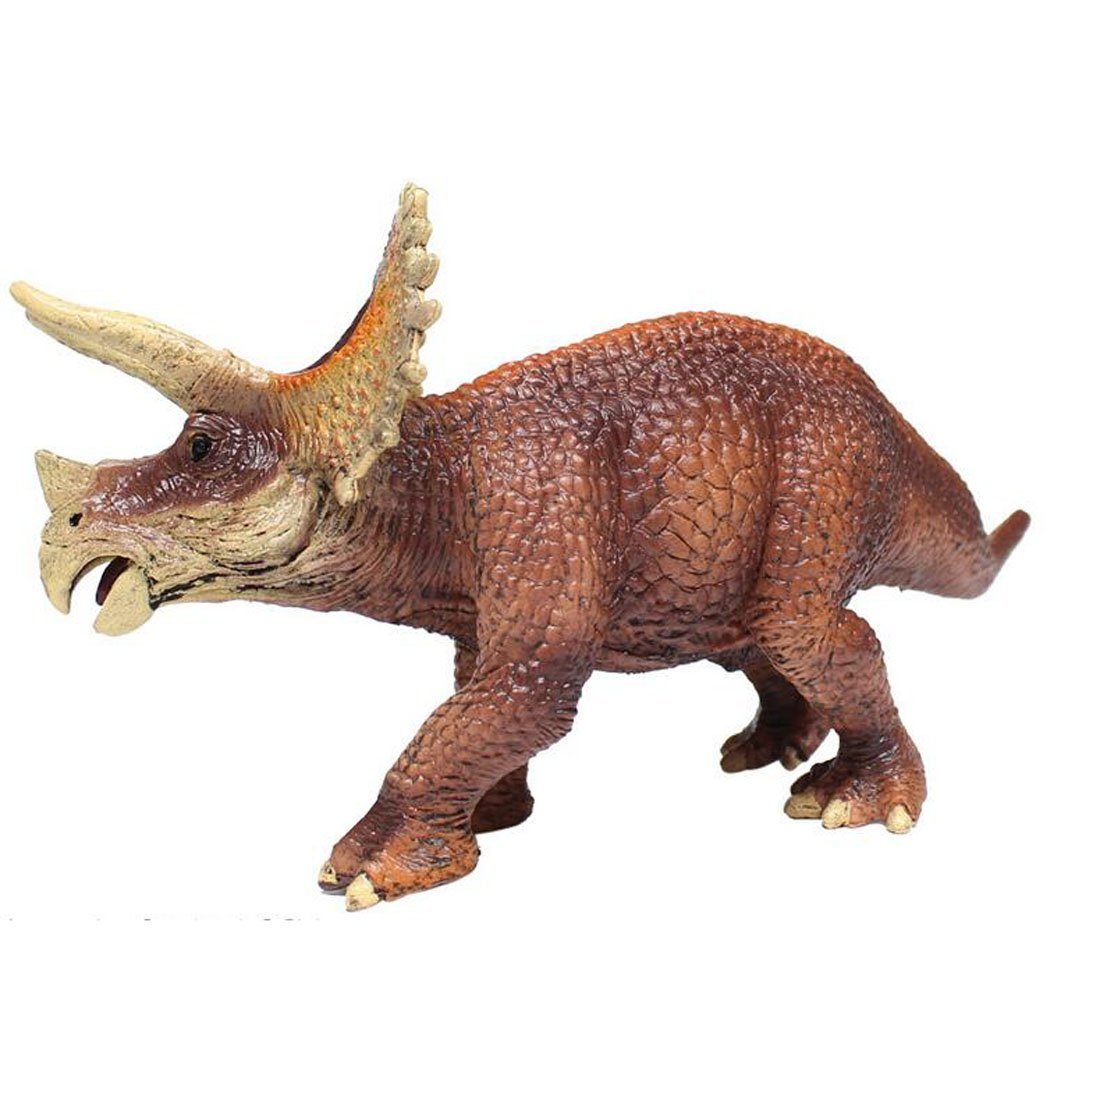 Decorations Themed Parties Realistic Plastic Toy Dinosaur Figure for Children NiGHT LiONS TECH Dinosaur Toy solid Triceratops Figurine 7.87 X 4.13X 3.14 Inches